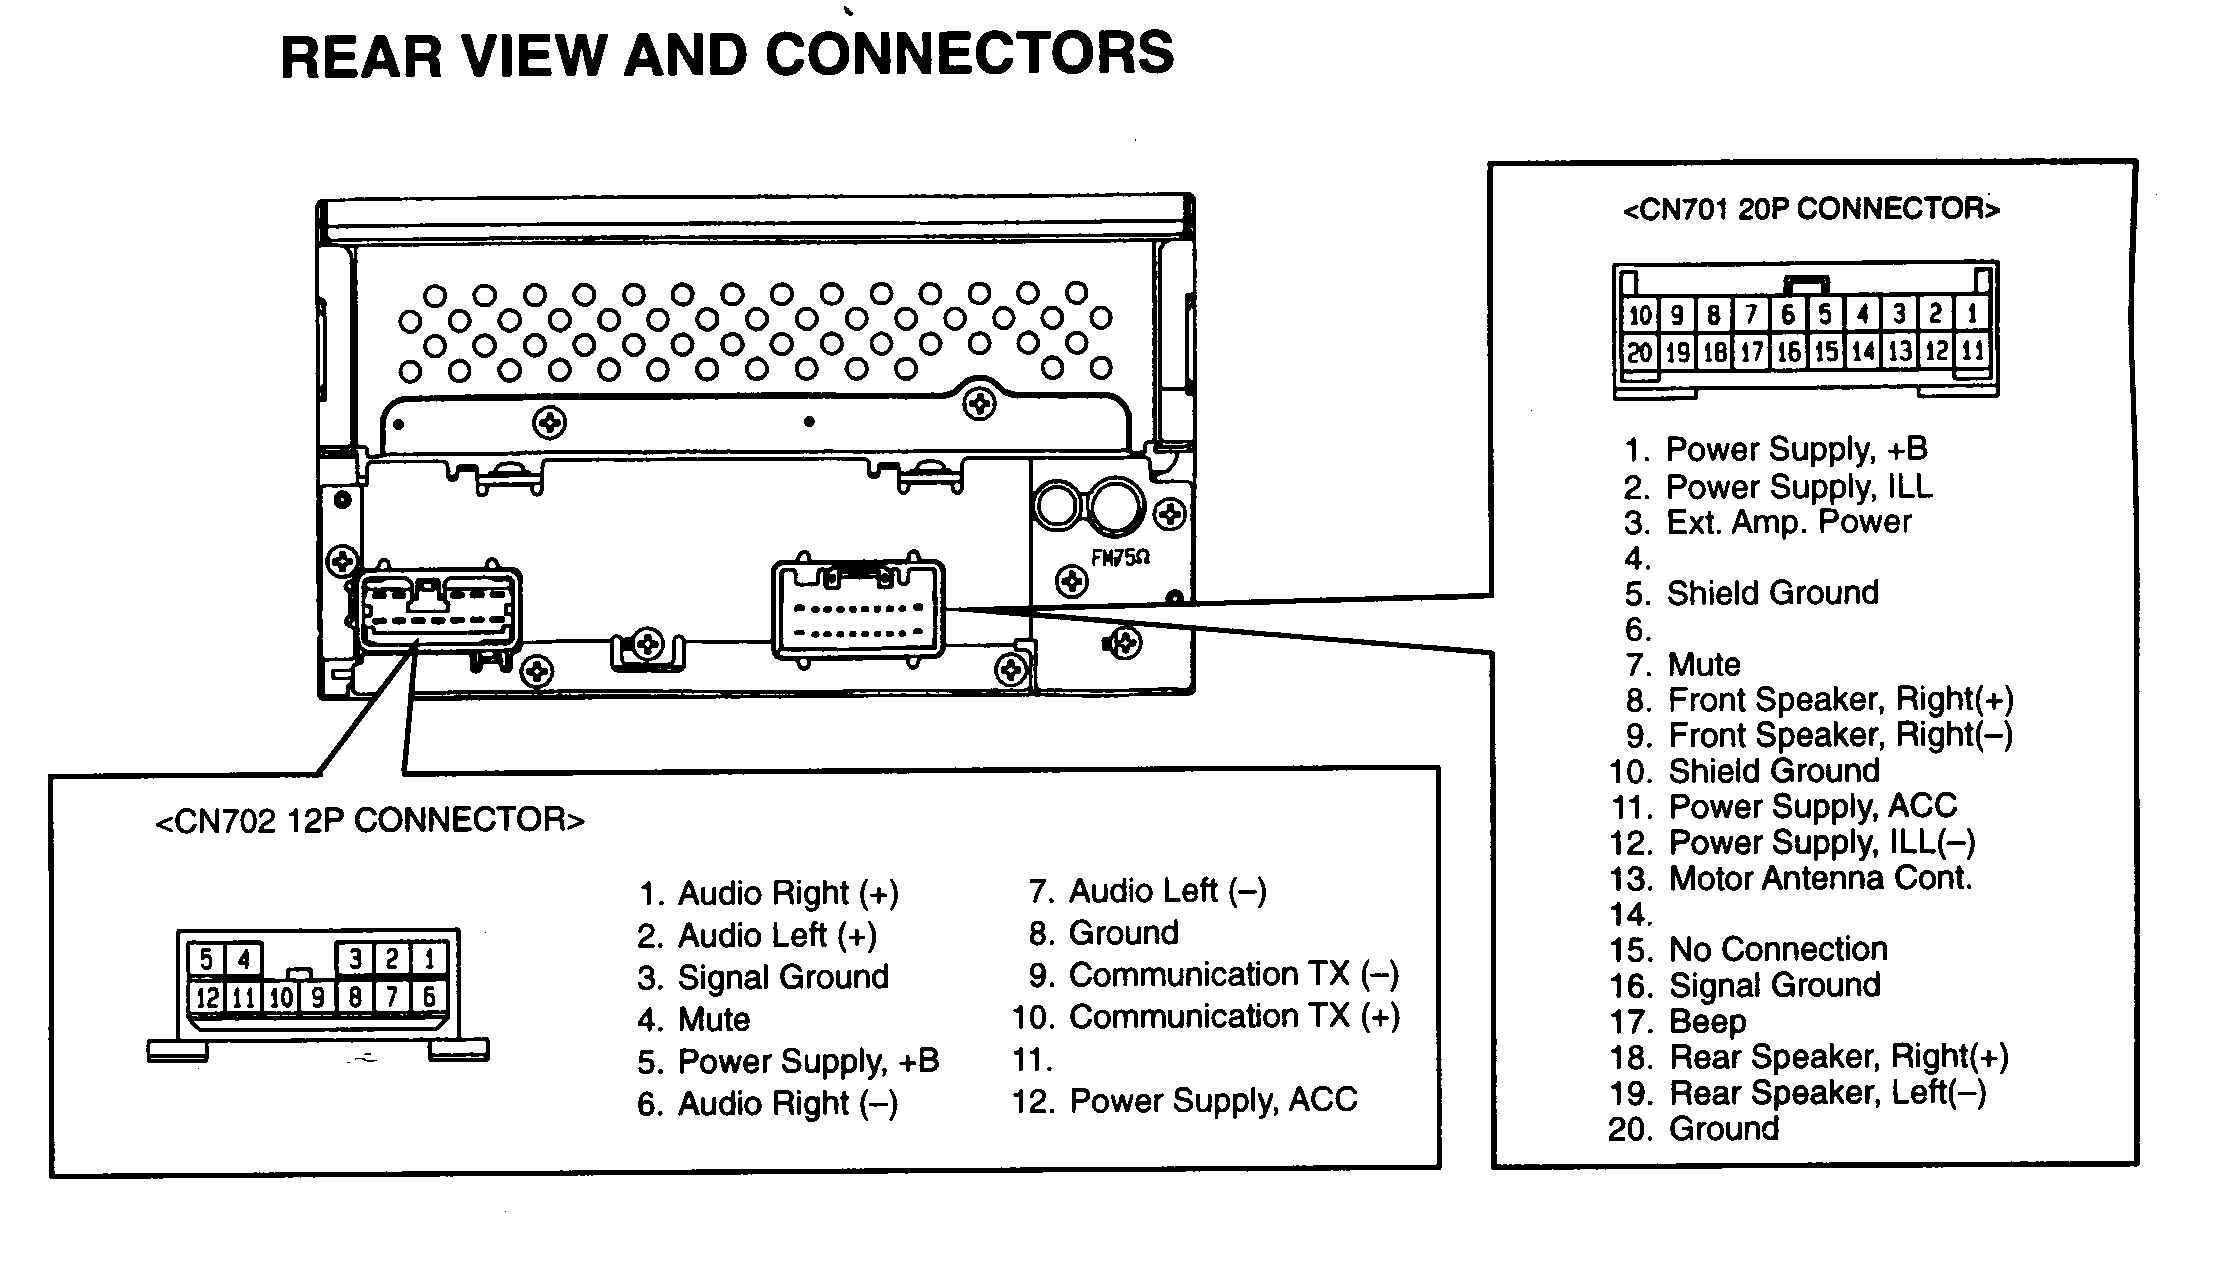 Wiring Diagram for A Jvc Car Stereo with Factory Car Stereo Wiring Diagrams Wiring Diagram Of Wiring Diagram for A Jvc Car Stereo